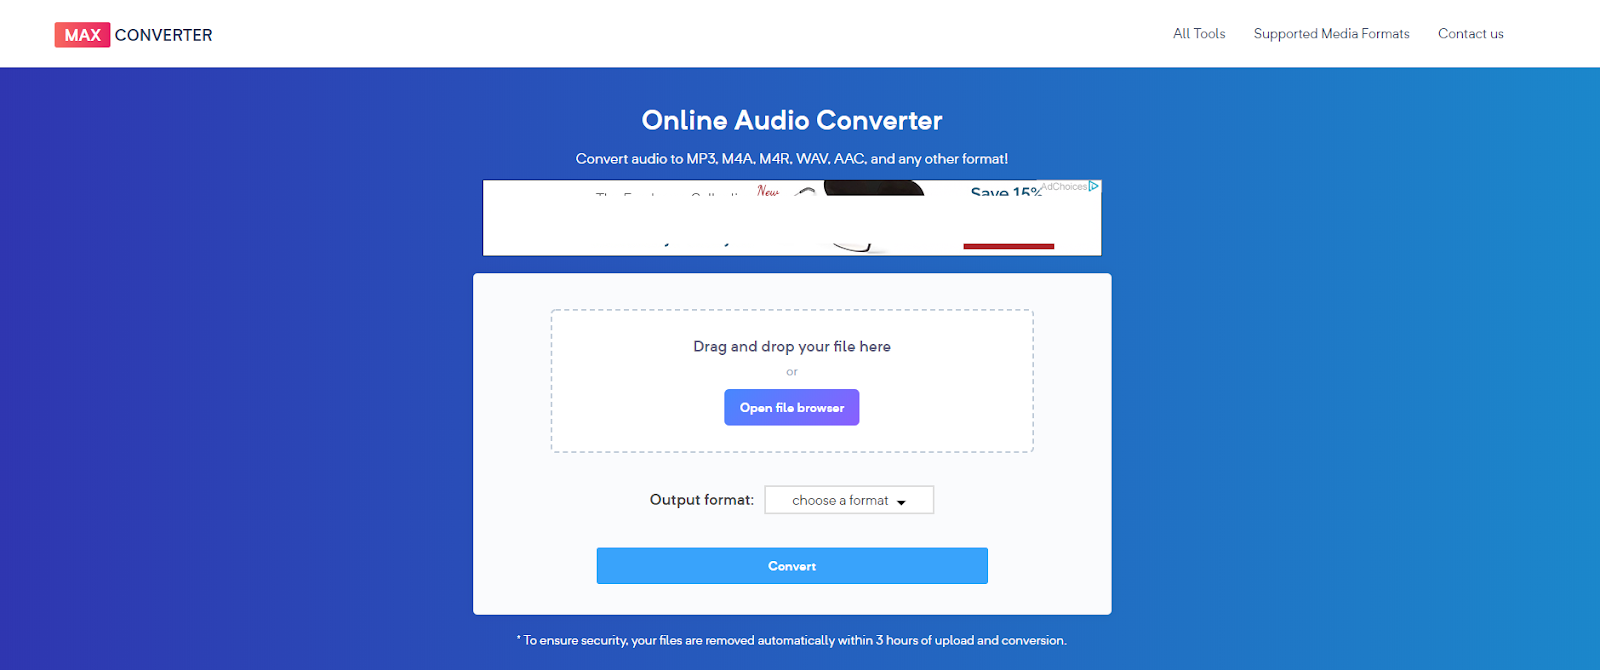 MaxConverter: Online Video and Audio Converter, Review - TGDaily